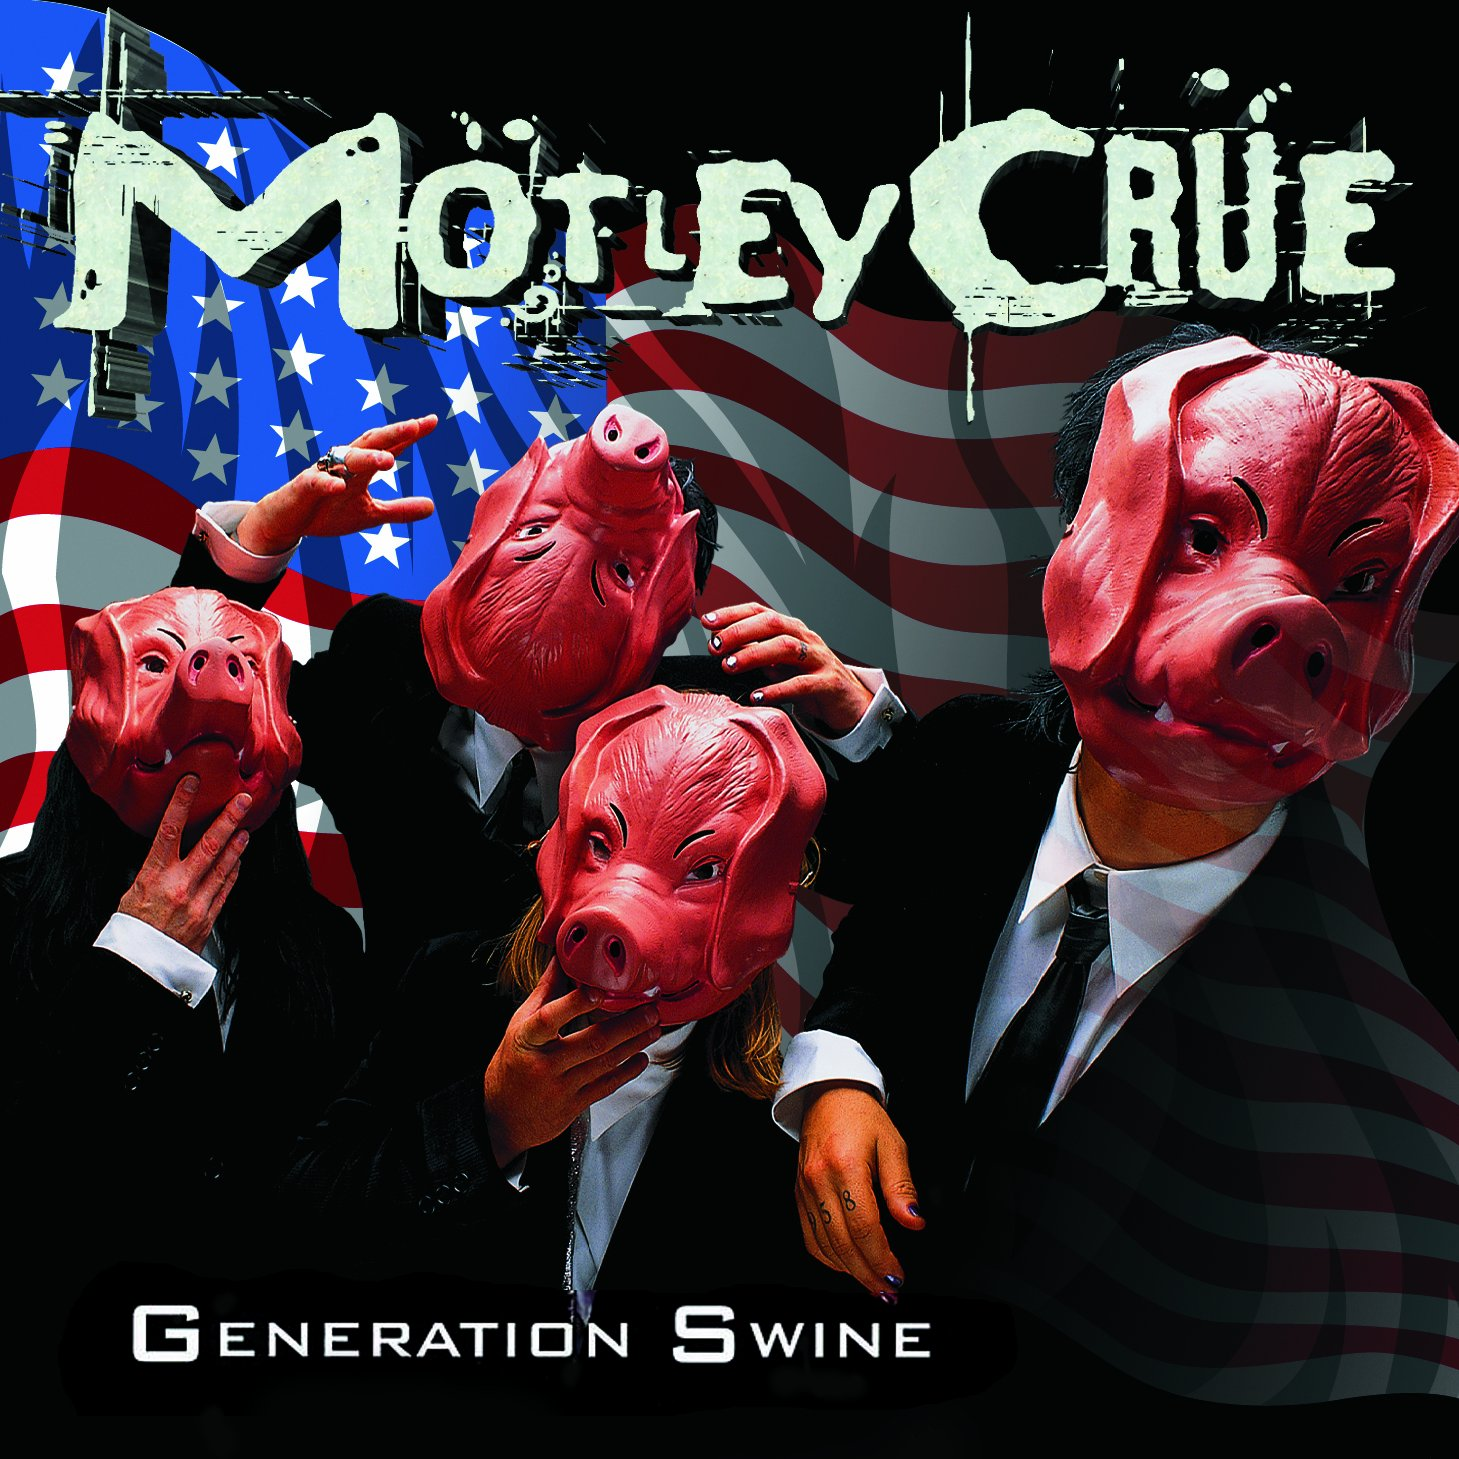 Mötley crüe mp3 collection (cd, cd-rom, compilation, unofficial.